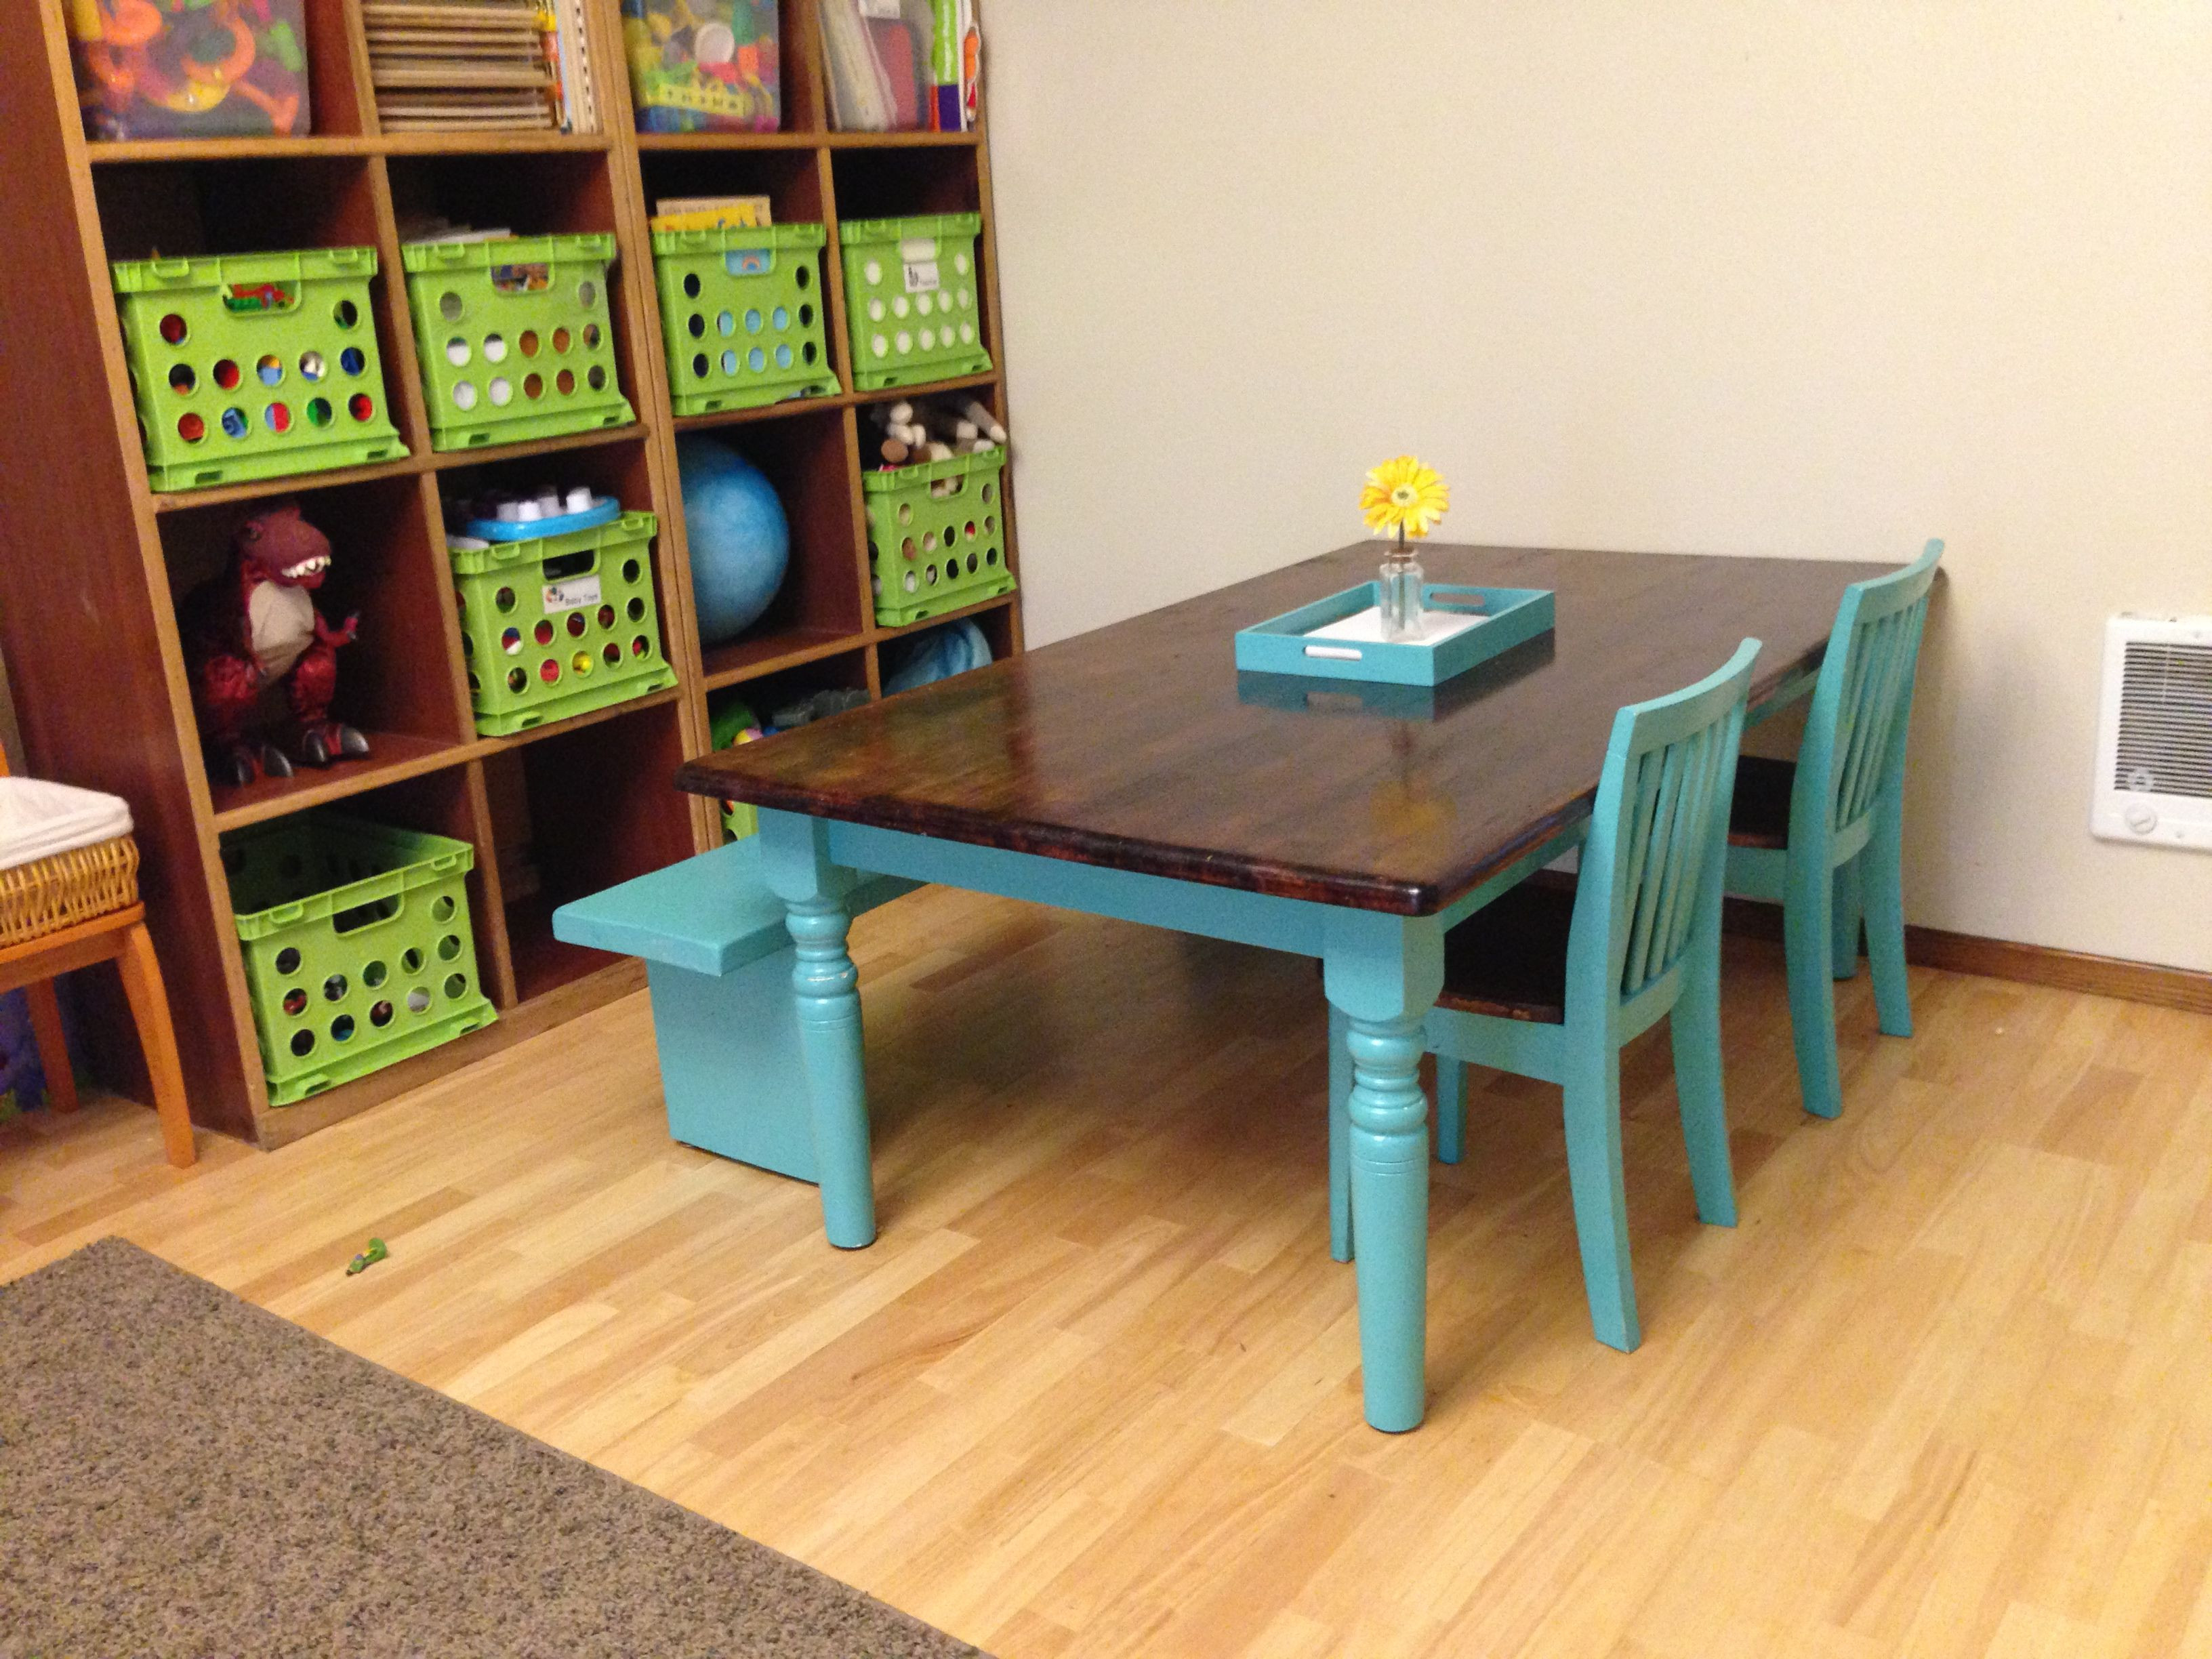 Best ideas about DIY Kids Playroom . Save or Pin Playroom table DIY Play Room Ideas Now.